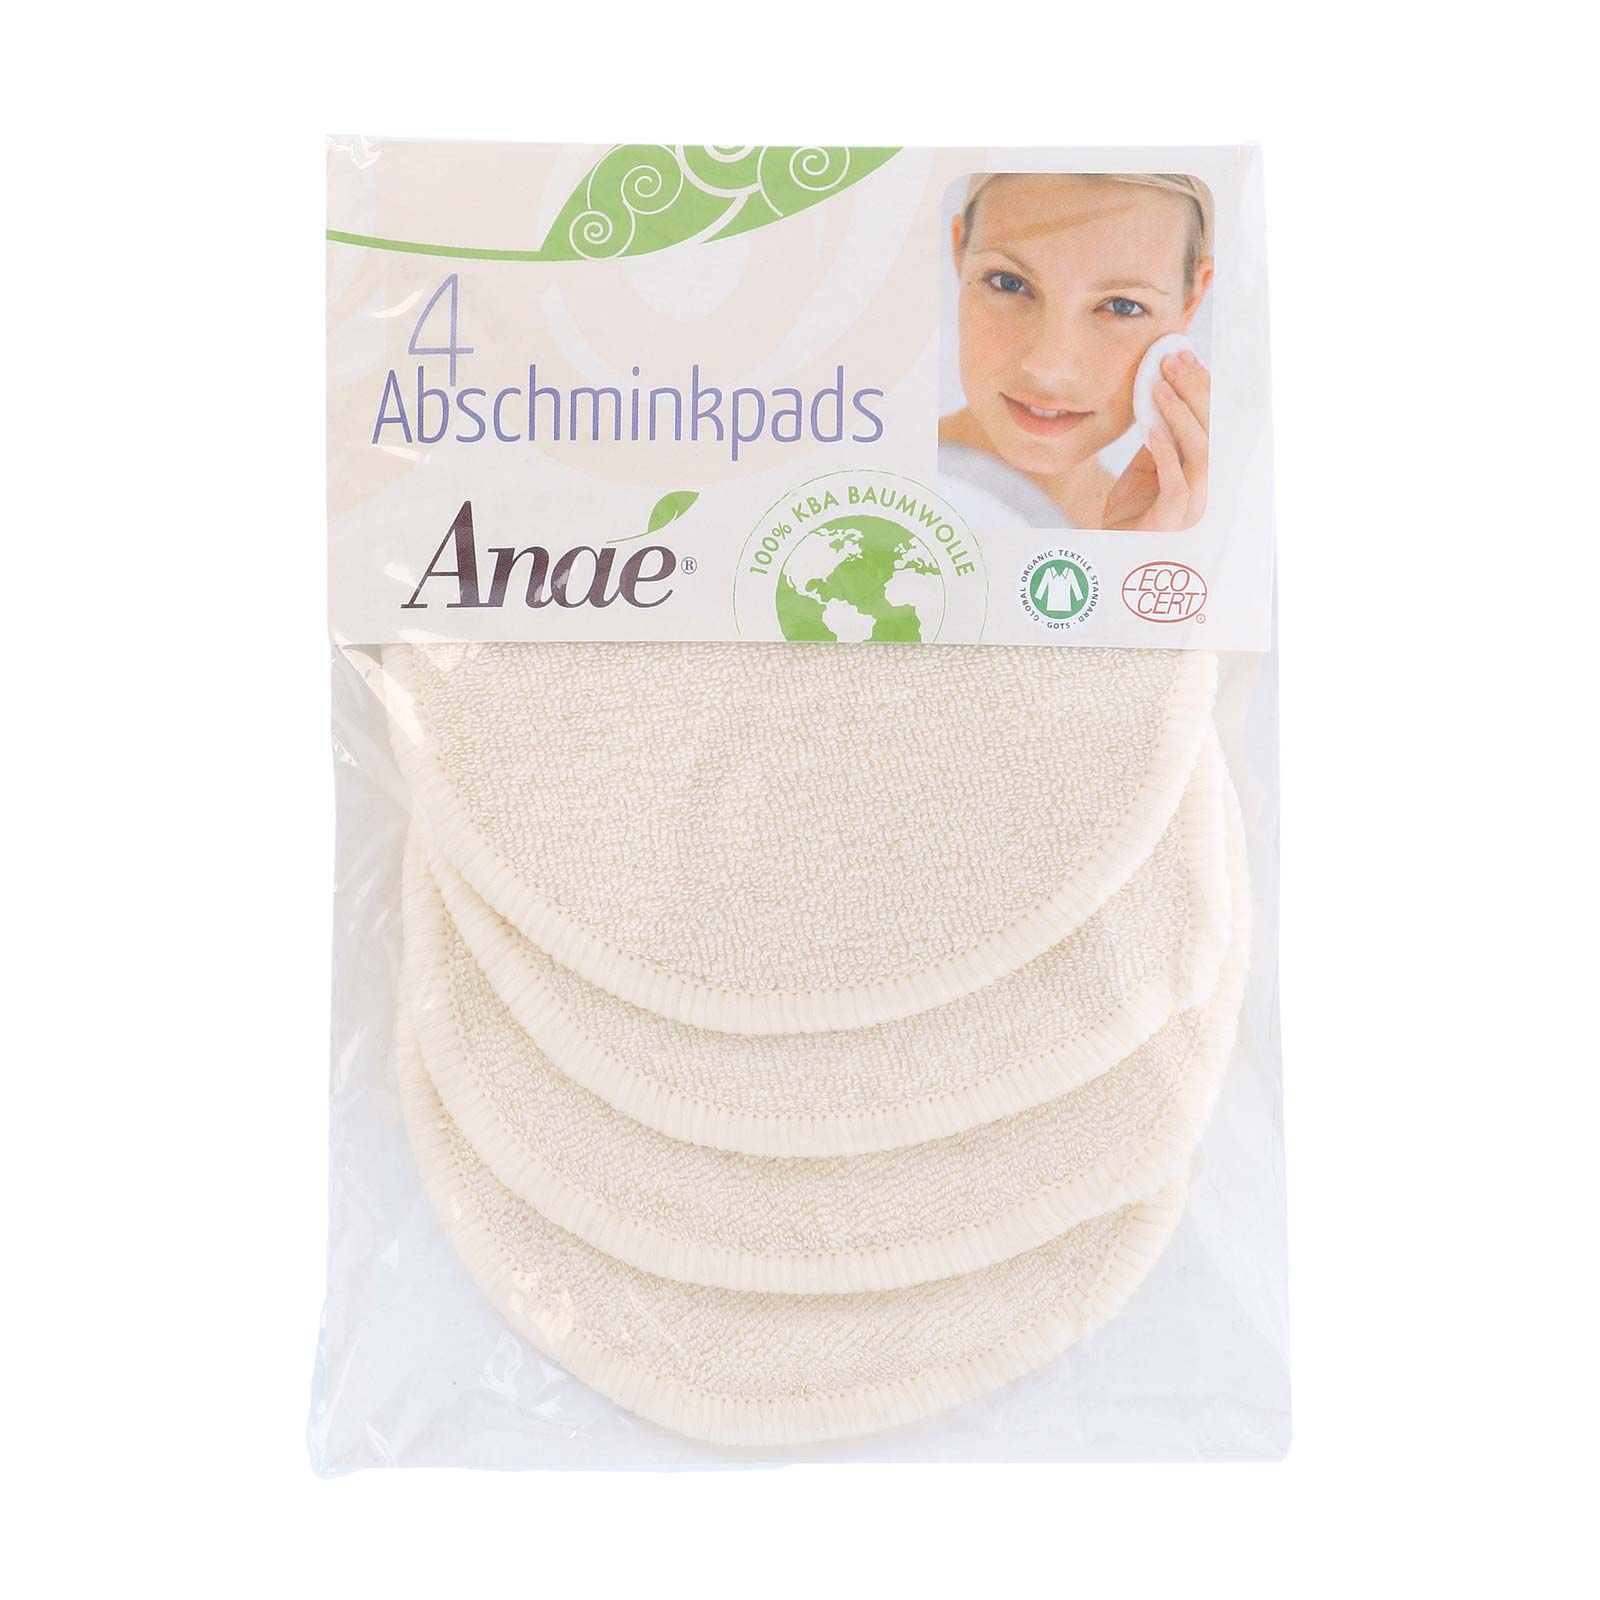 Reusable Make Up Remover Pads - certified organic cotton - 4 pack